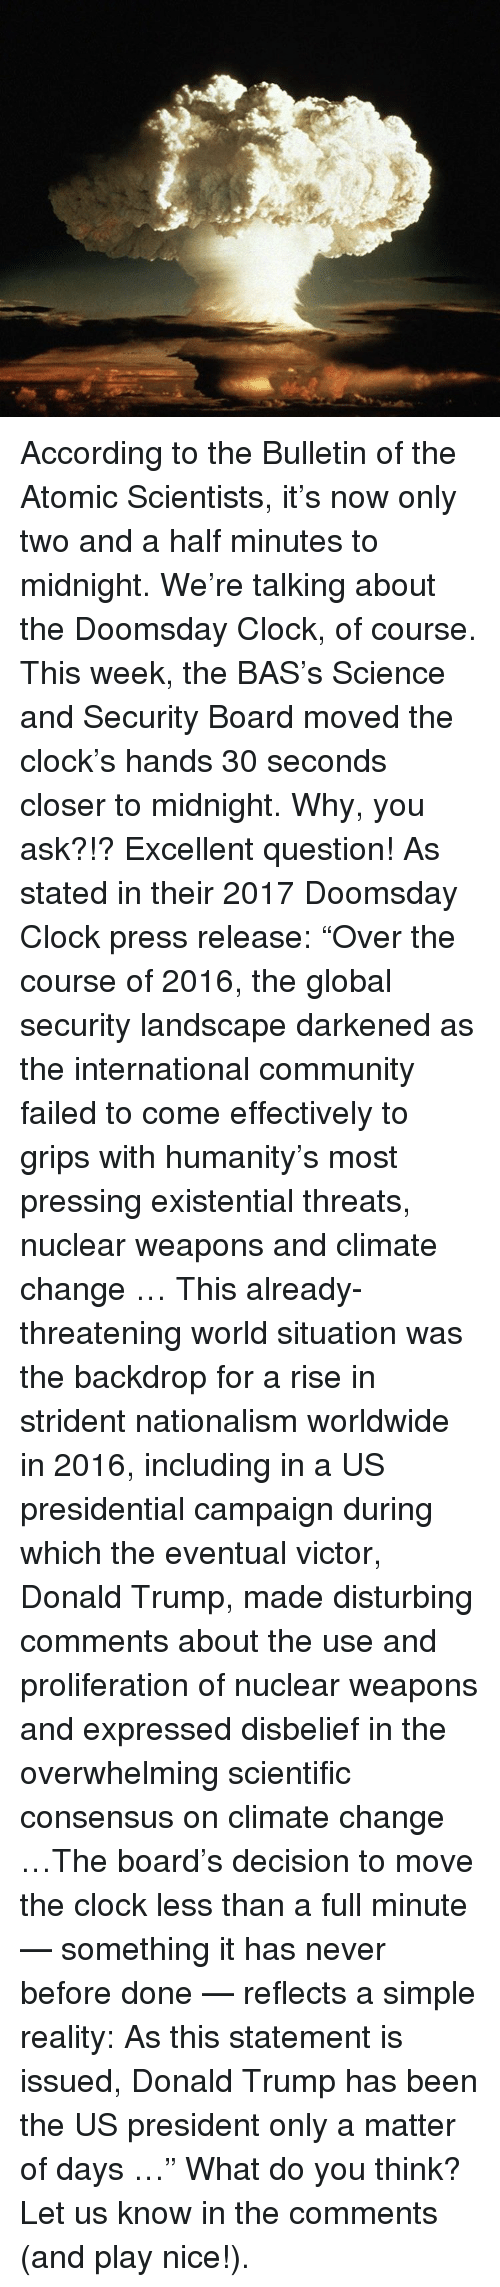 "internations: According to the Bulletin of the Atomic Scientists, it's now only two and a half minutes to midnight. We're talking about the Doomsday Clock, of course. This week, the BAS's Science and Security Board moved the clock's hands 30 seconds closer to midnight. Why, you ask?!? Excellent question! As stated in their 2017 Doomsday Clock press release: ""Over the course of 2016, the global security landscape darkened as the international community failed to come effectively to grips with humanity's most pressing existential threats, nuclear weapons and climate change … This already-threatening world situation was the backdrop for a rise in strident nationalism worldwide in 2016, including in a US presidential campaign during which the eventual victor, Donald Trump, made disturbing comments about the use and proliferation of nuclear weapons and expressed disbelief in the overwhelming scientific consensus on climate change …The board's decision to move the clock less than a full minute — something it has never before done — reflects a simple reality: As this statement is issued, Donald Trump has been the US president only a matter of days …"" What do you think? Let us know in the comments (and play nice!)."